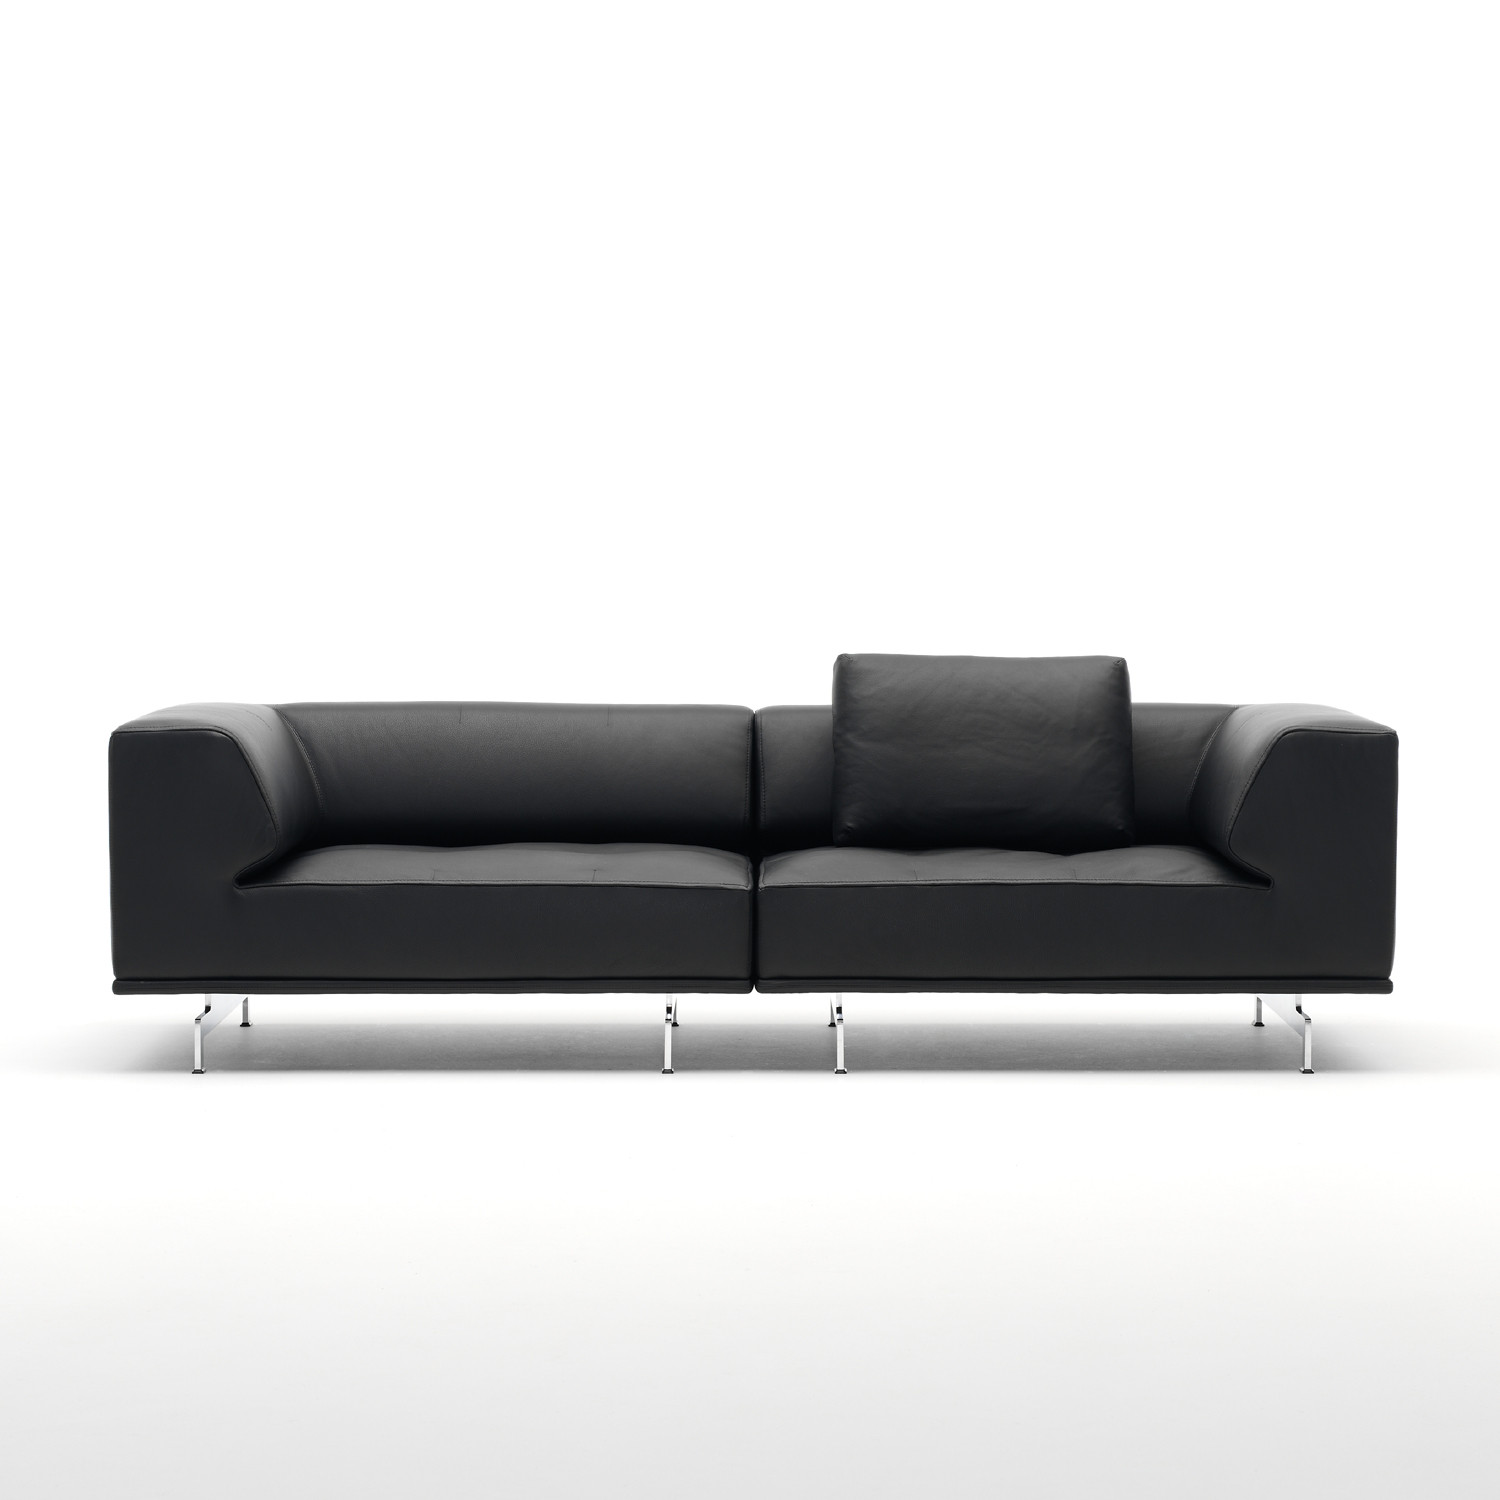 EJ 450 Delphi Sofa Two-Seater